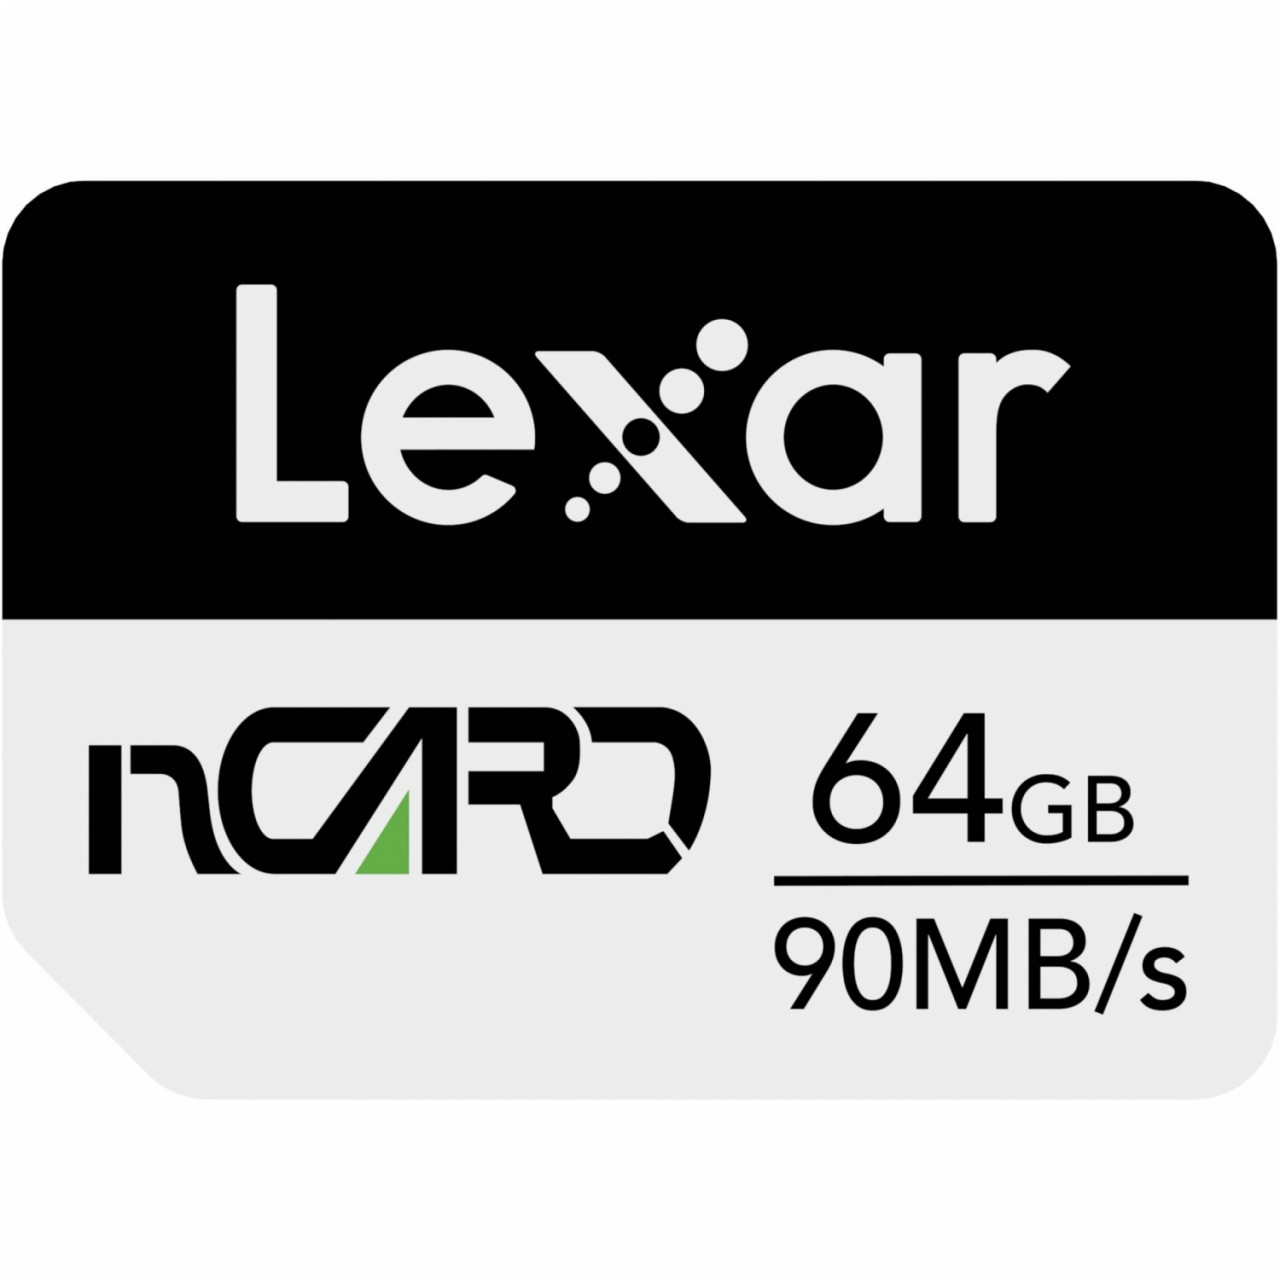 Lexar nCard 64GB only for Huawei devices